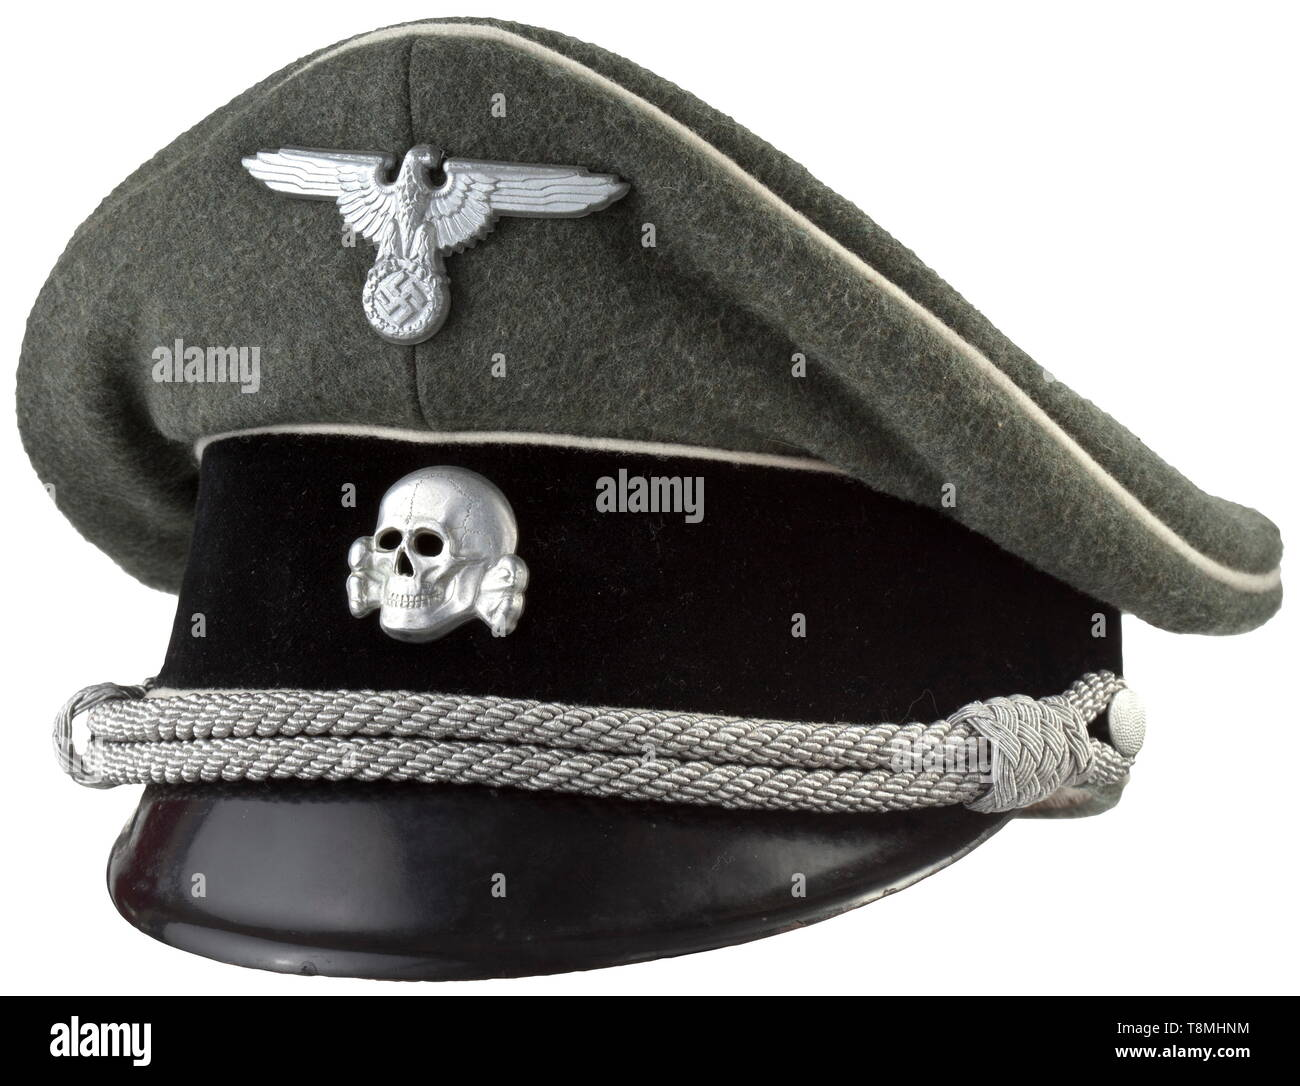 """A visor cap for leaders of the Waffen-SS Field-grey gabardine, black velvet trim stripe, white piping, aluminium insignia, silver cap cord, grey-silk liner with size stamping """"57"""", light brown leather sweat band. Rare. historic, historical, 20th century, 1930s, 1940s, Waffen-SS, armed division of the SS, armed service, armed services, NS, National Socialism, Nazism, Third Reich, German Reich, Germany, military, militaria, utensil, piece of equipment, utensils, object, objects, stills, clipping, clippings, cut out, cut-out, cut-outs, fascism, fascistic, National Socialist, N, Editorial-Use-Only Stock Photo"""